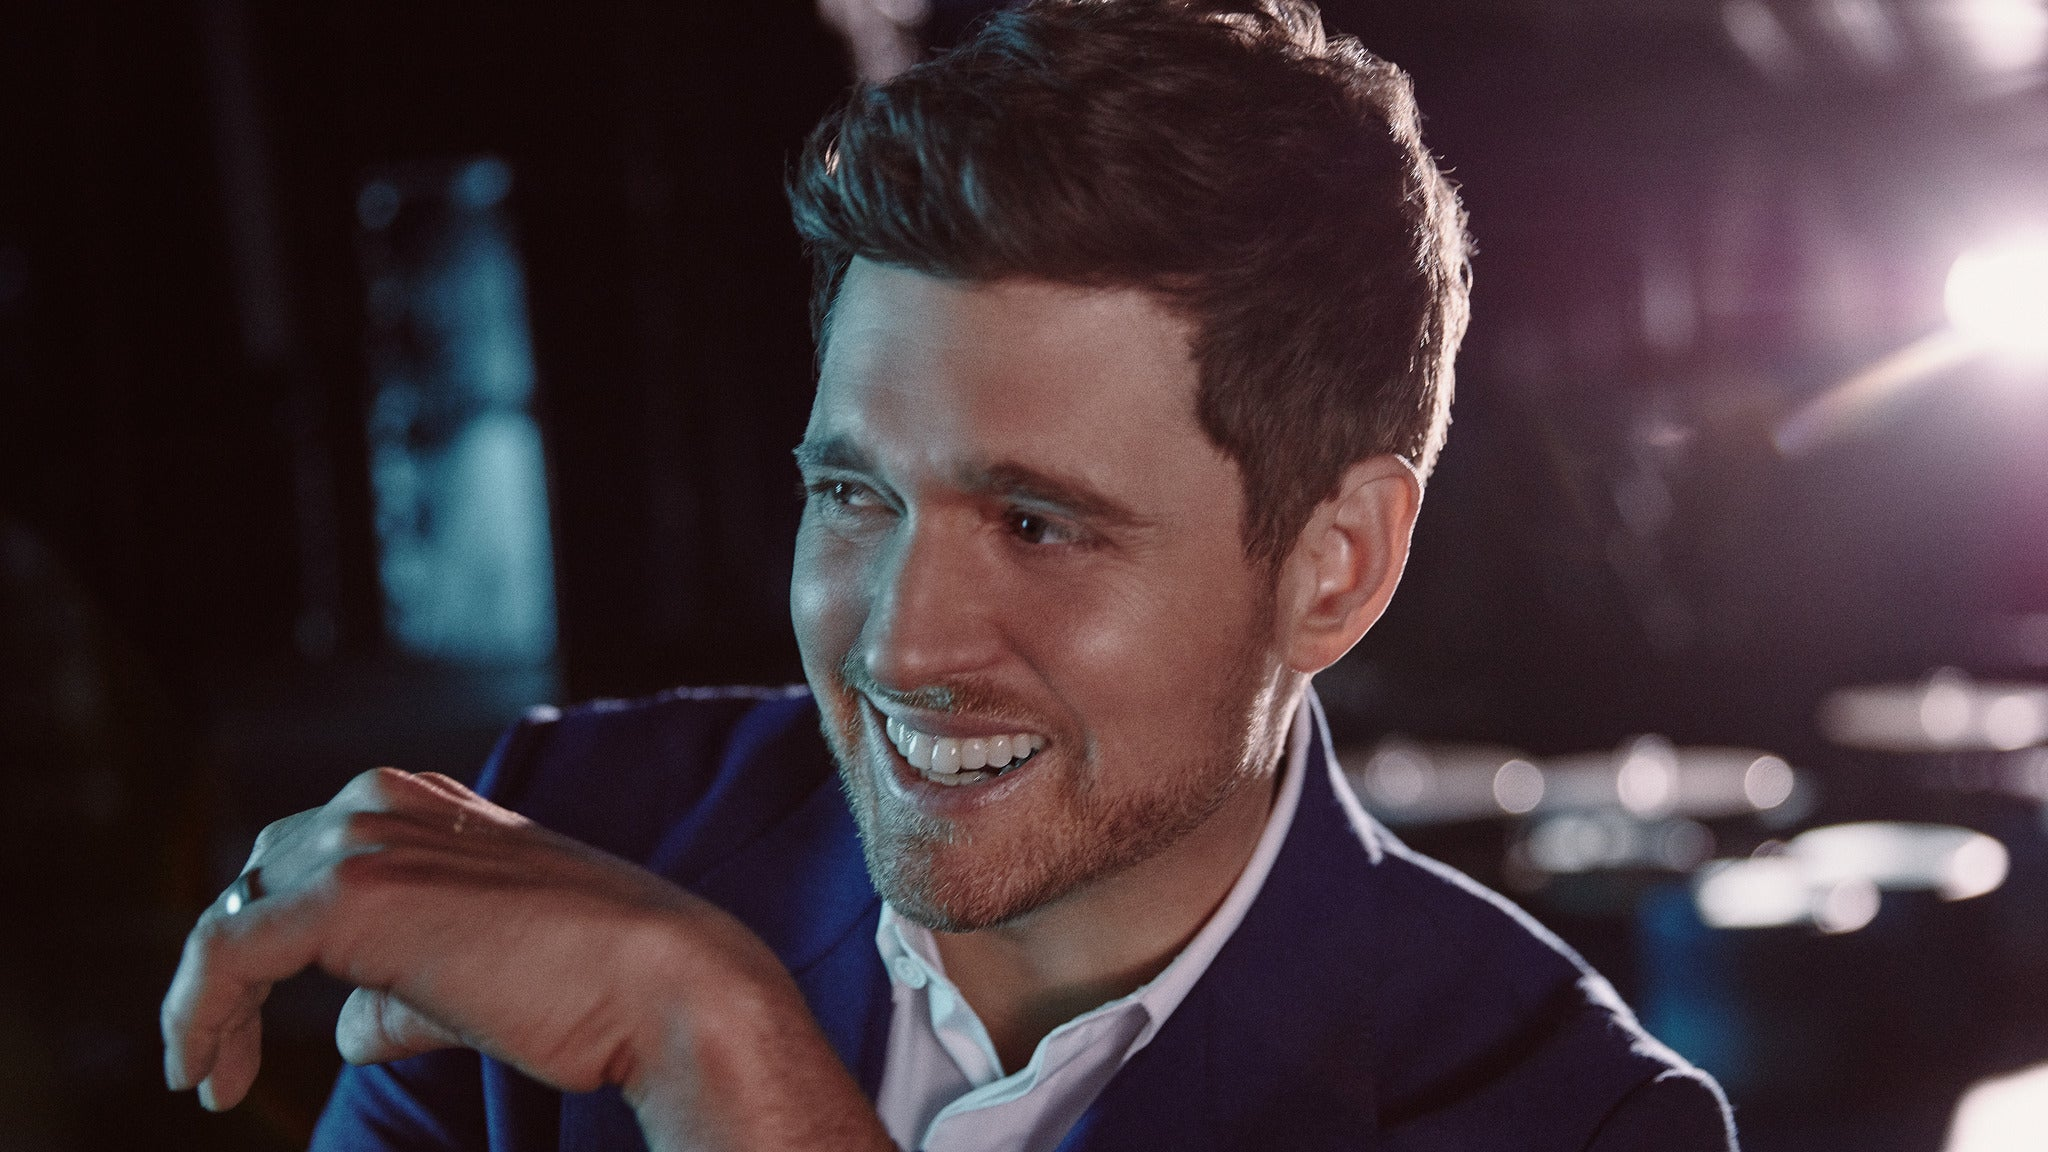 Michael Bublé at The Crofoot Ballroom